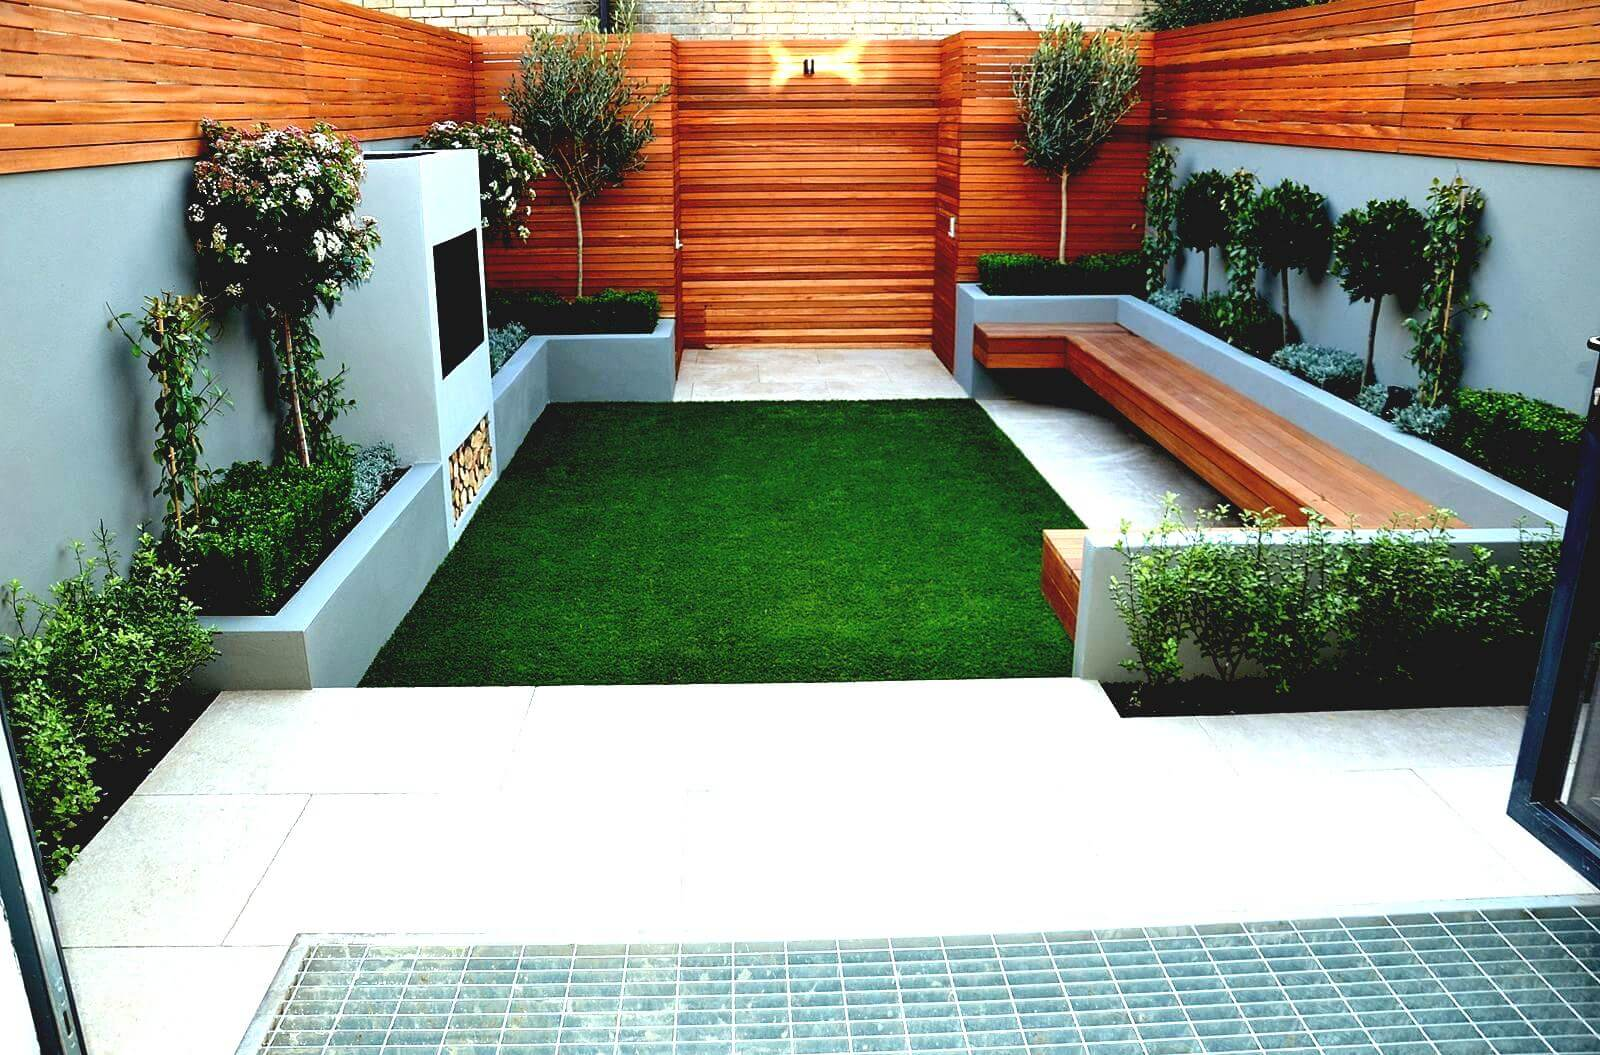 50 Best Front Garden Design Ideas in UK - Home Decor Ideas UK on Home Backyard Ideas id=31342